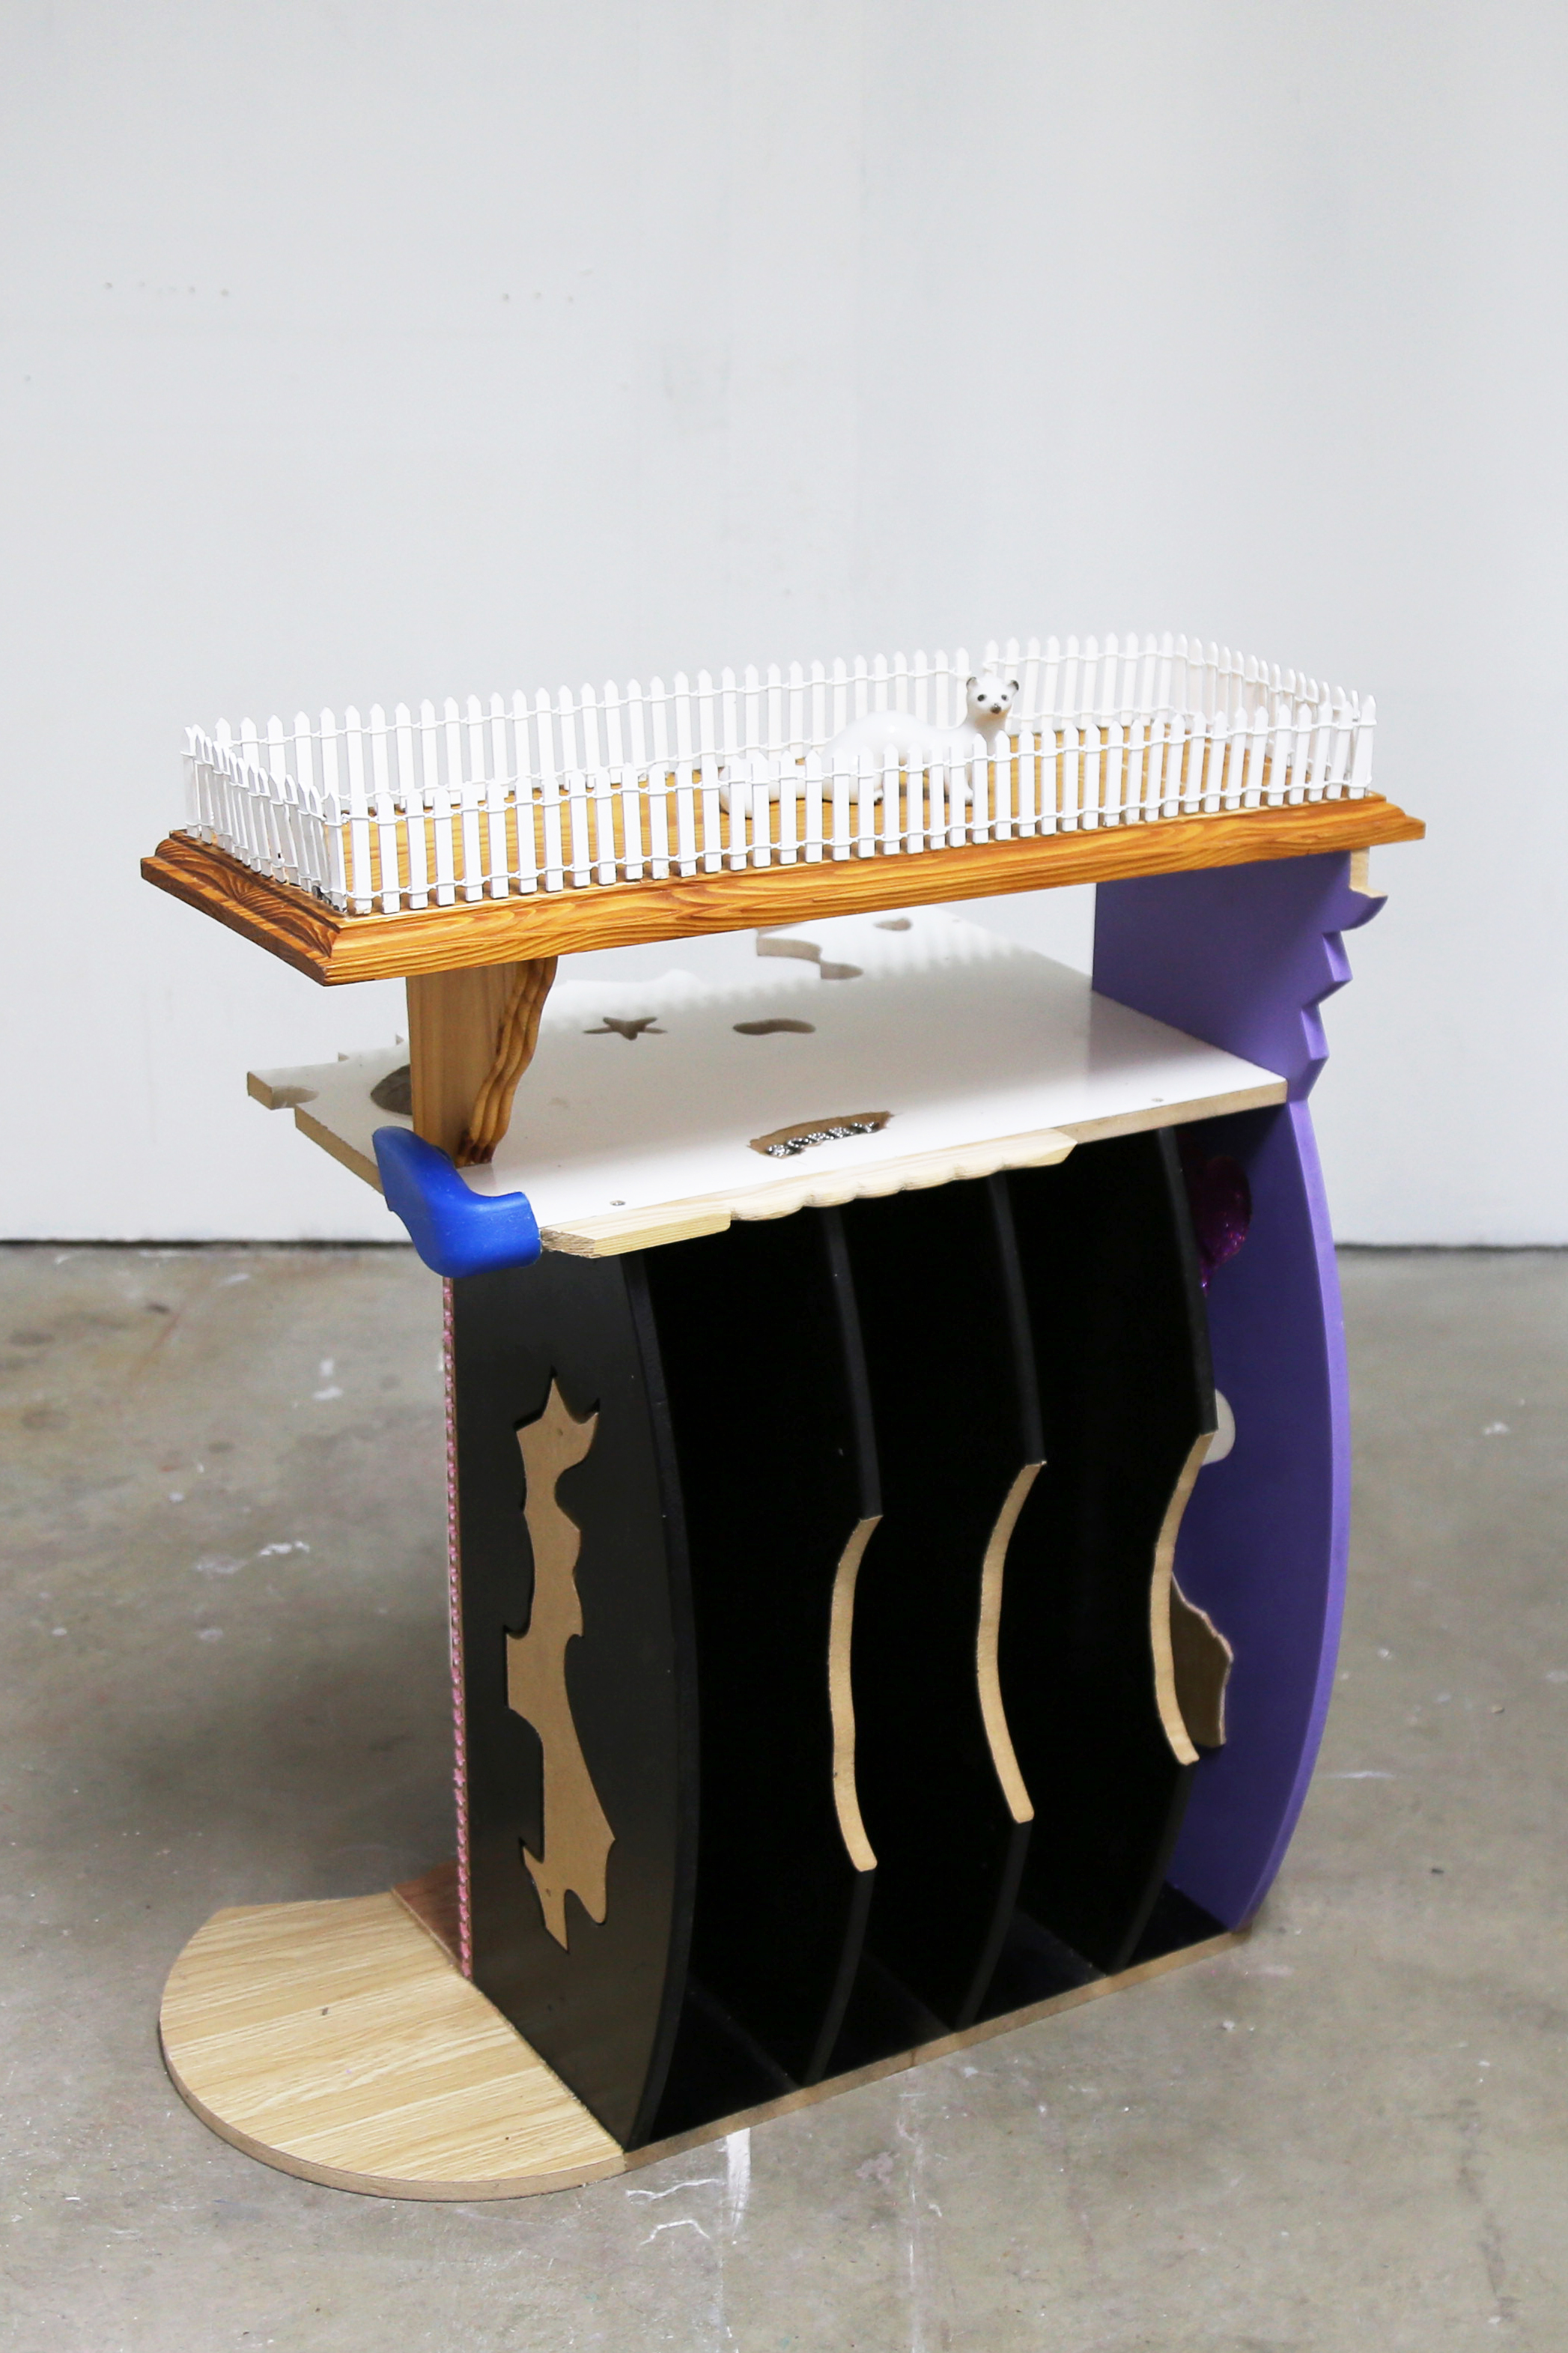 A white, purple, black and brown sculpture